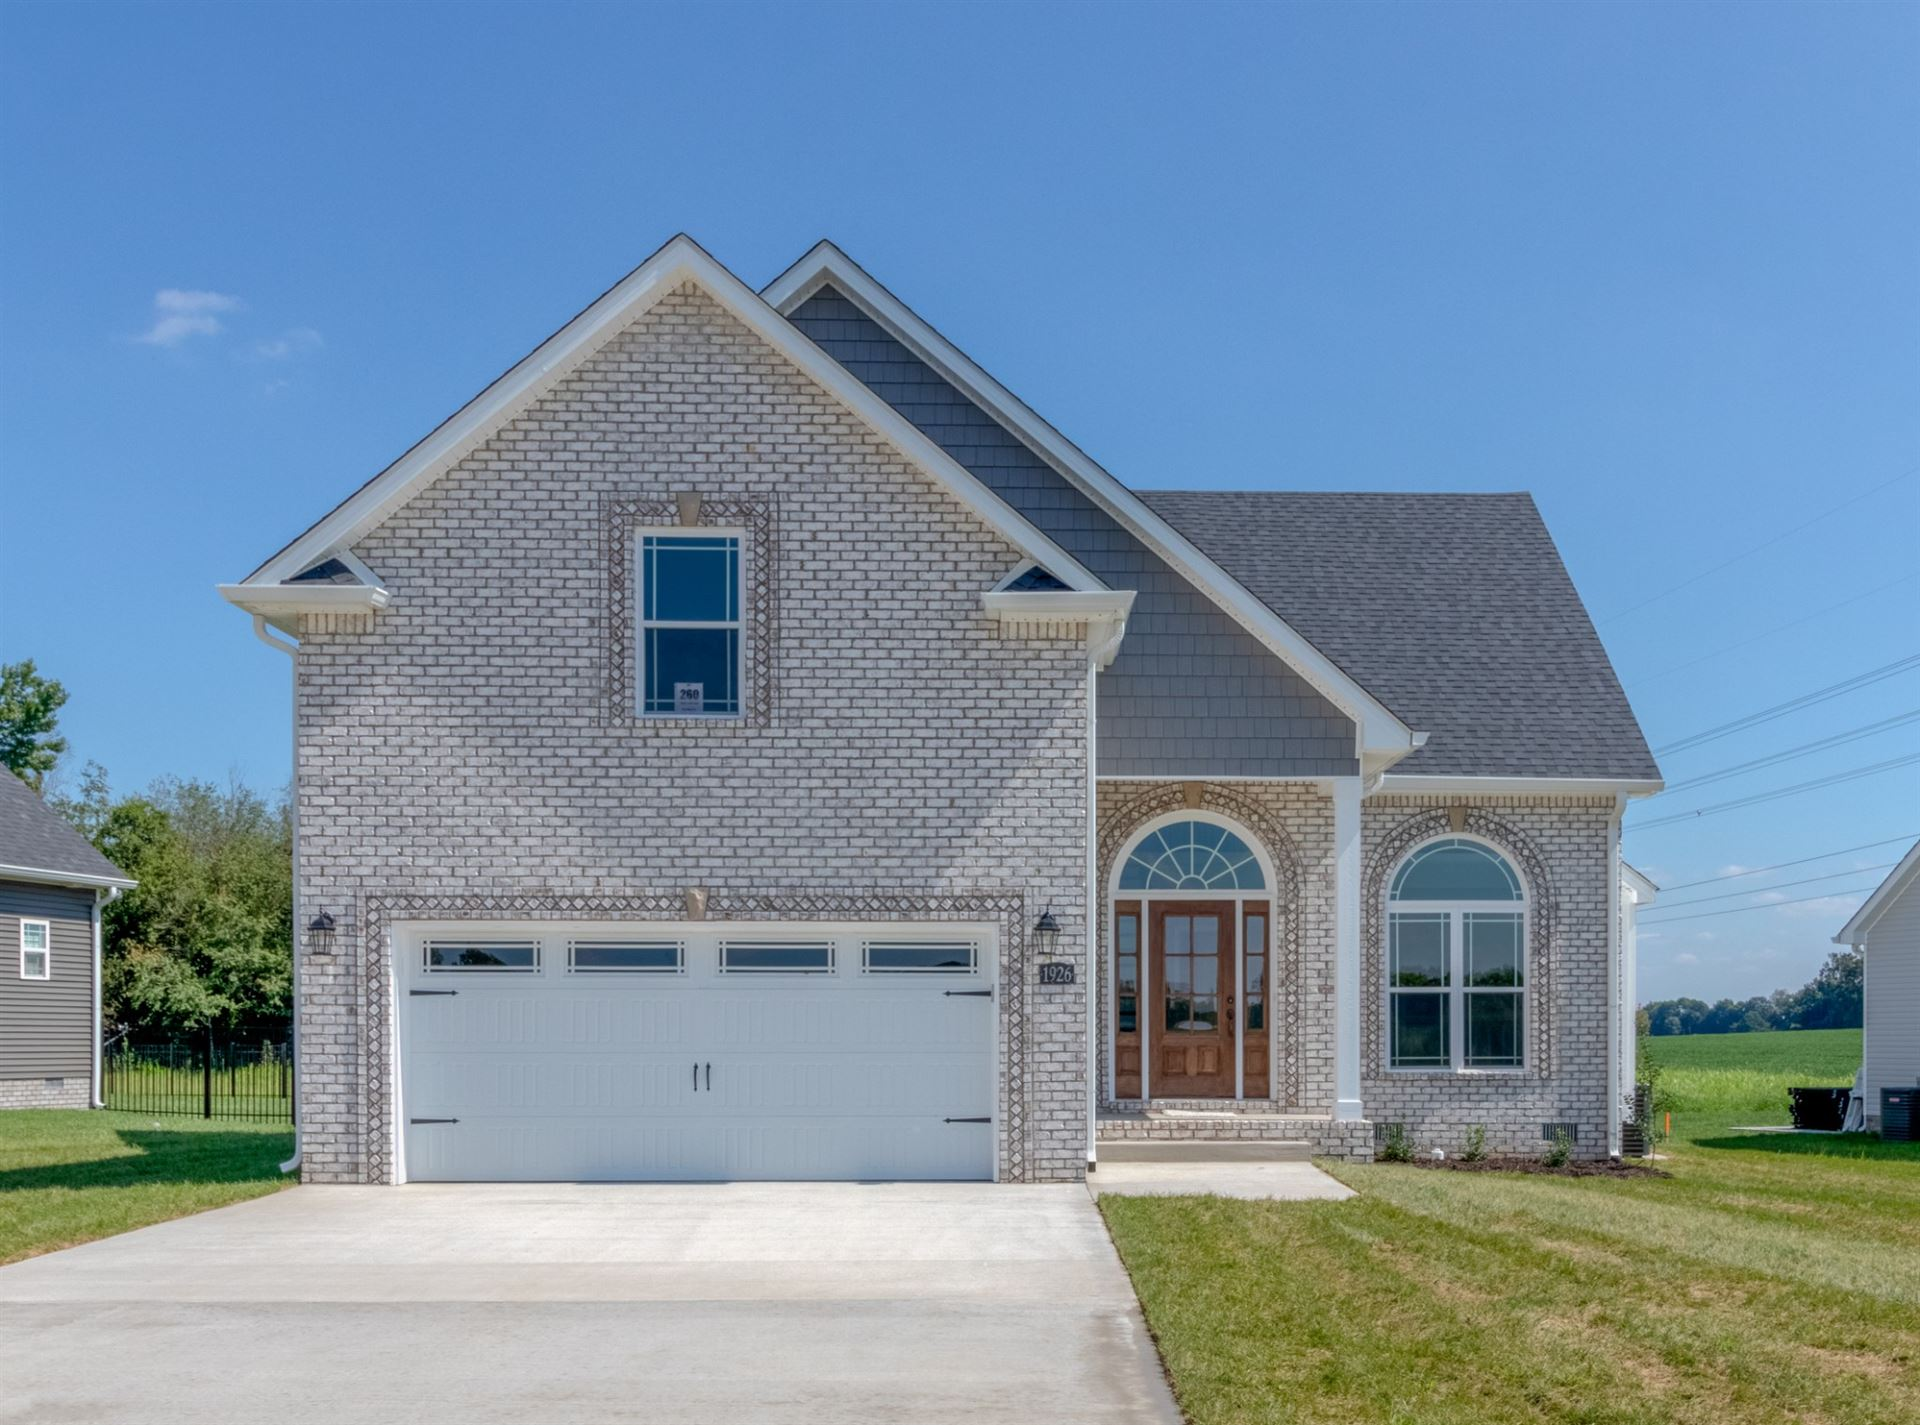 260 Wellington Fields, Clarksville, TN 37043 - MLS#: 2229548